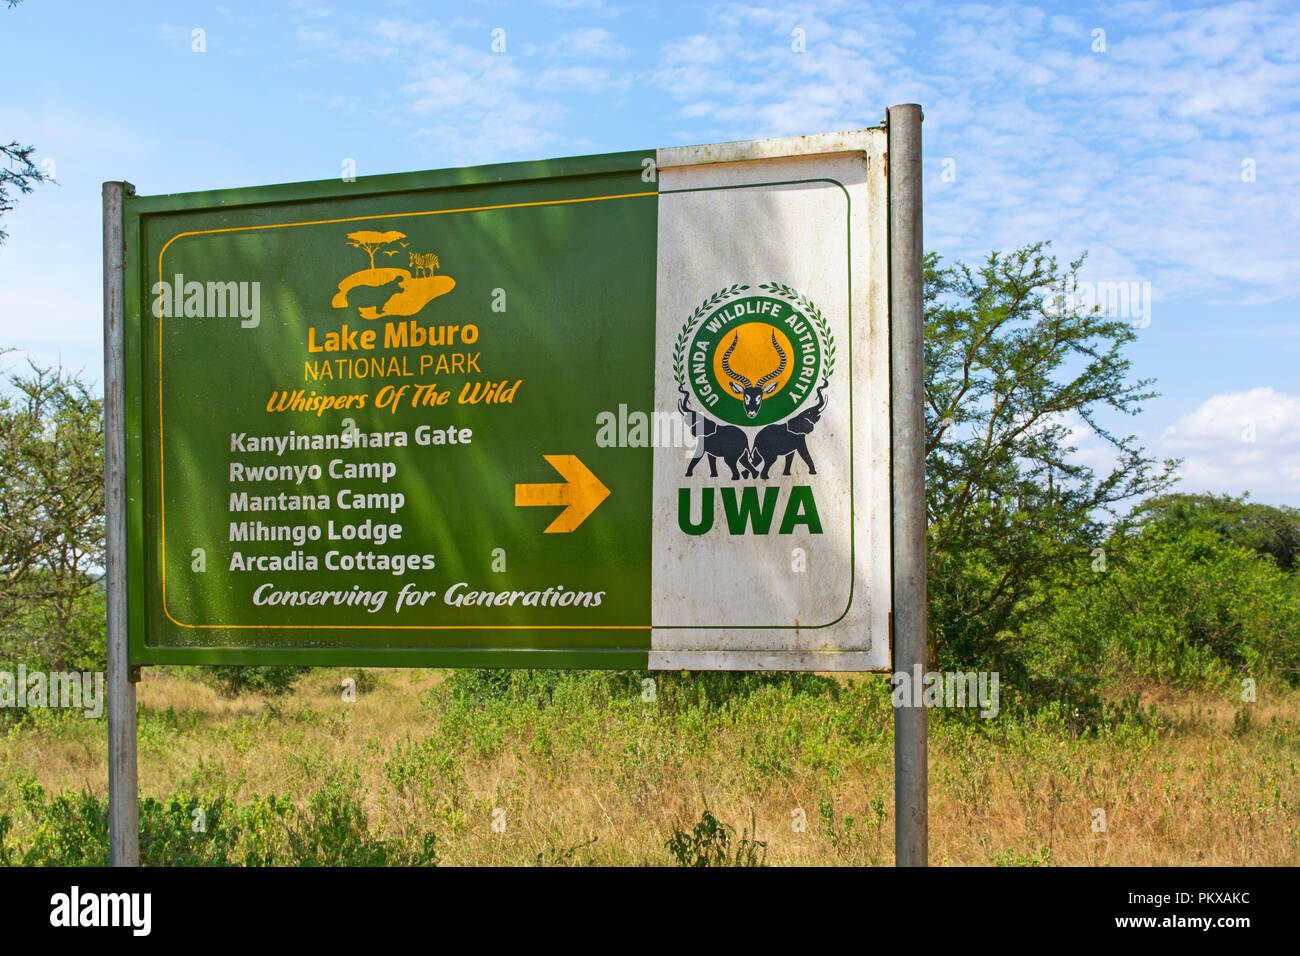 Sign, Lake Mburo National Park with Directions to Kwaninyanshara Gate, Rwonyo Camp, Mantana Camp, Mihingo Lodge & Arcadia Cottages, Uganda East Africa - Stock Image